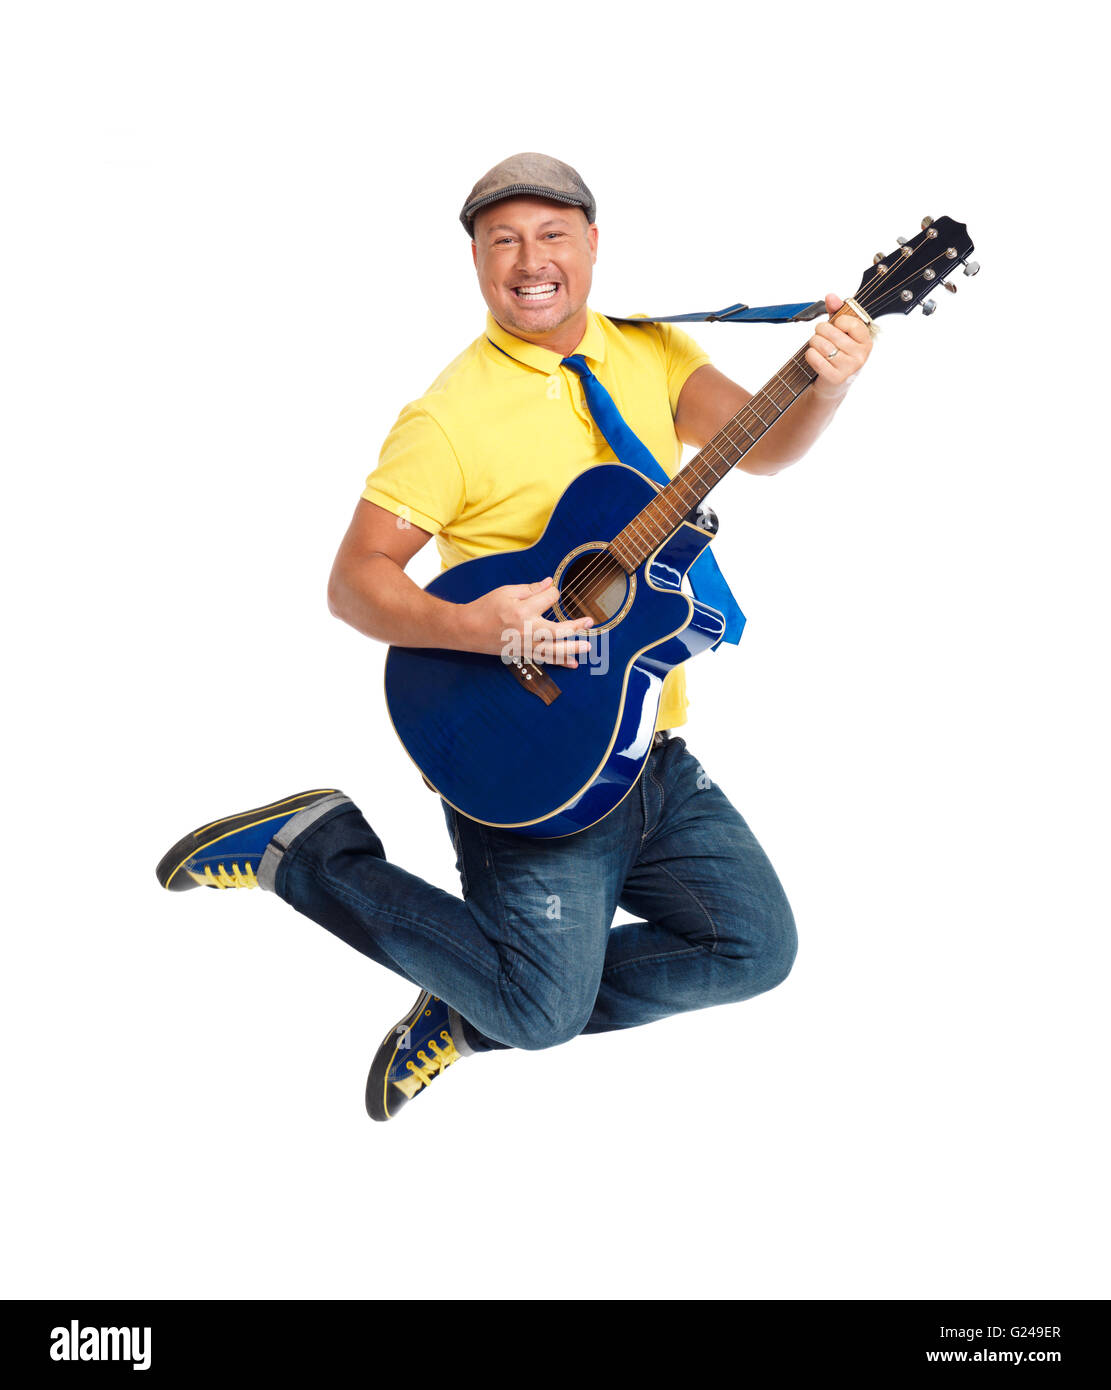 Happy smiling guitar player jumping with an acoustic guitar